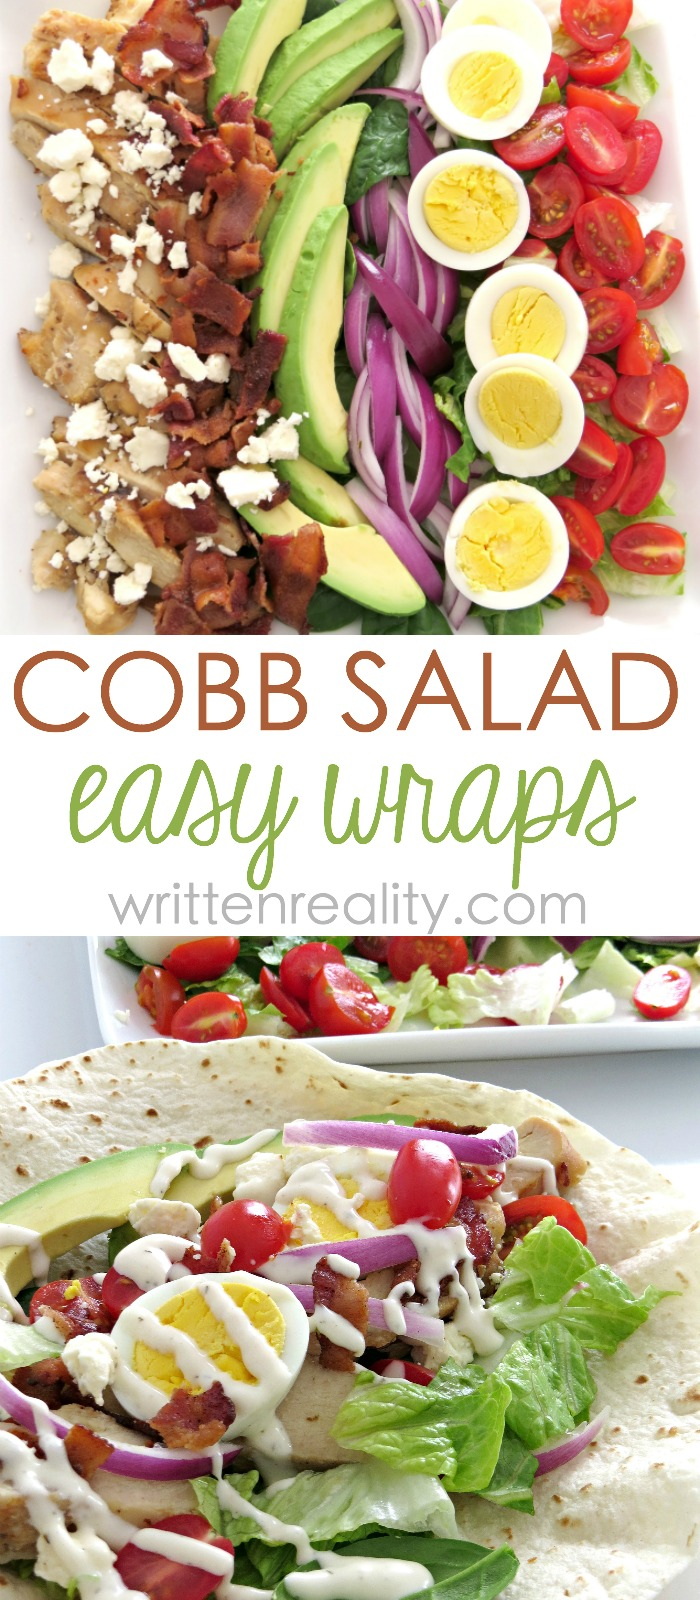 cobb salad wrap recipe